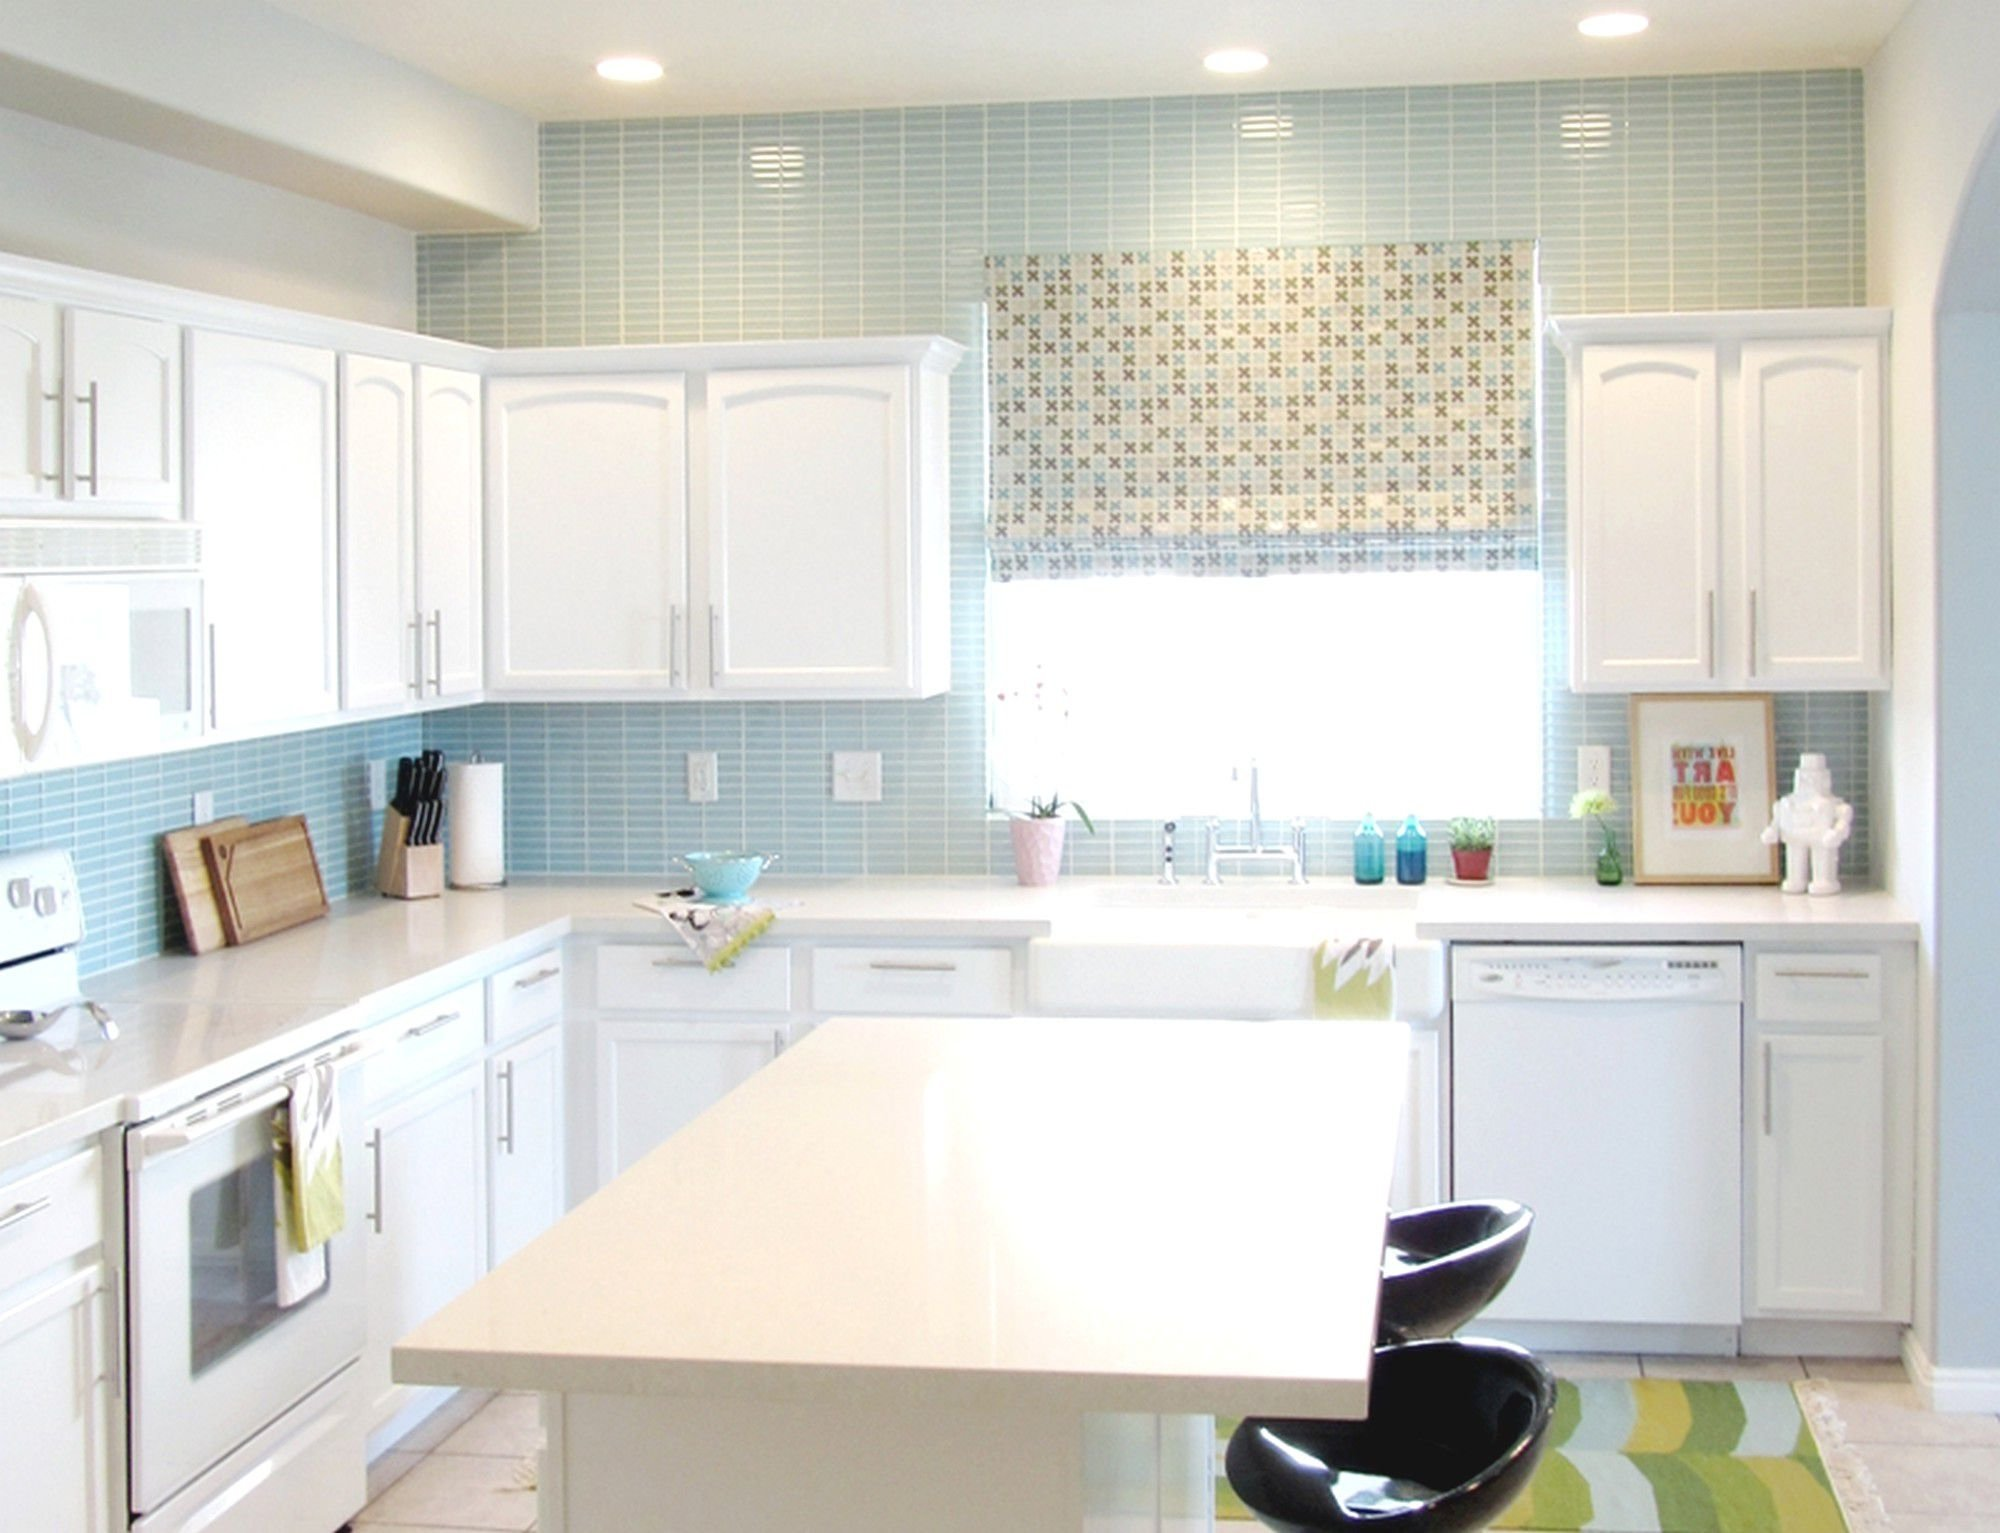 10 Unique Backsplash Ideas For White Cabinets white cabinet and frosted cabinet doors kitchen backsplash ideas for 2021